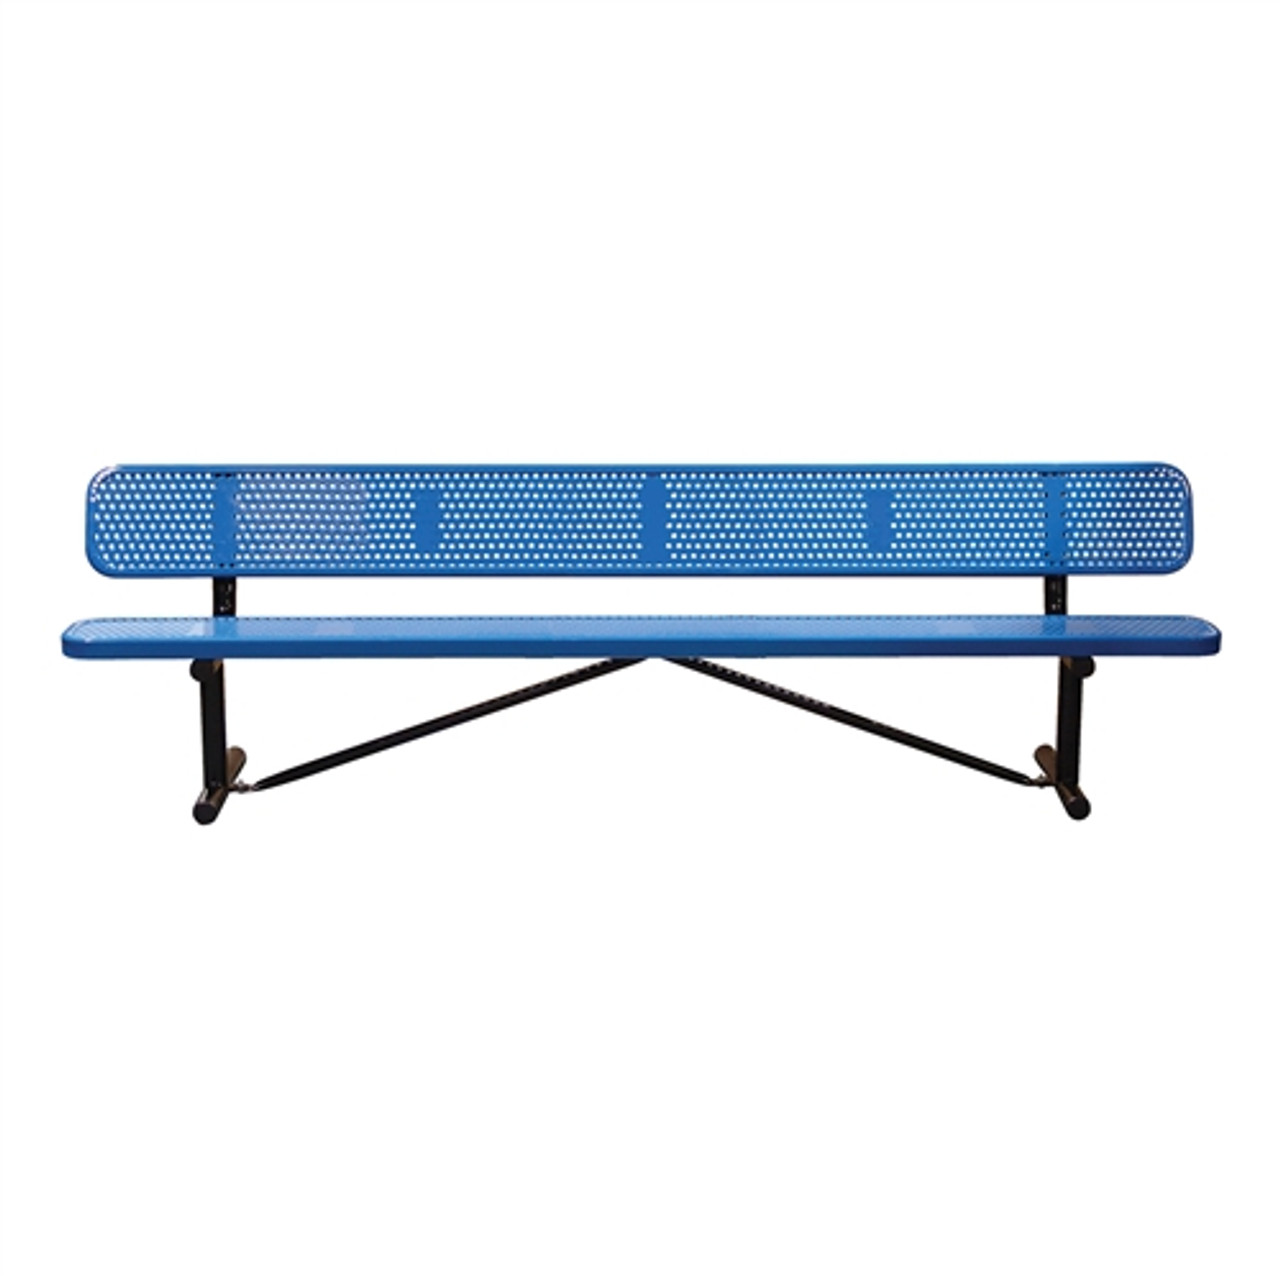 15' Perforated Steel Bench with Back